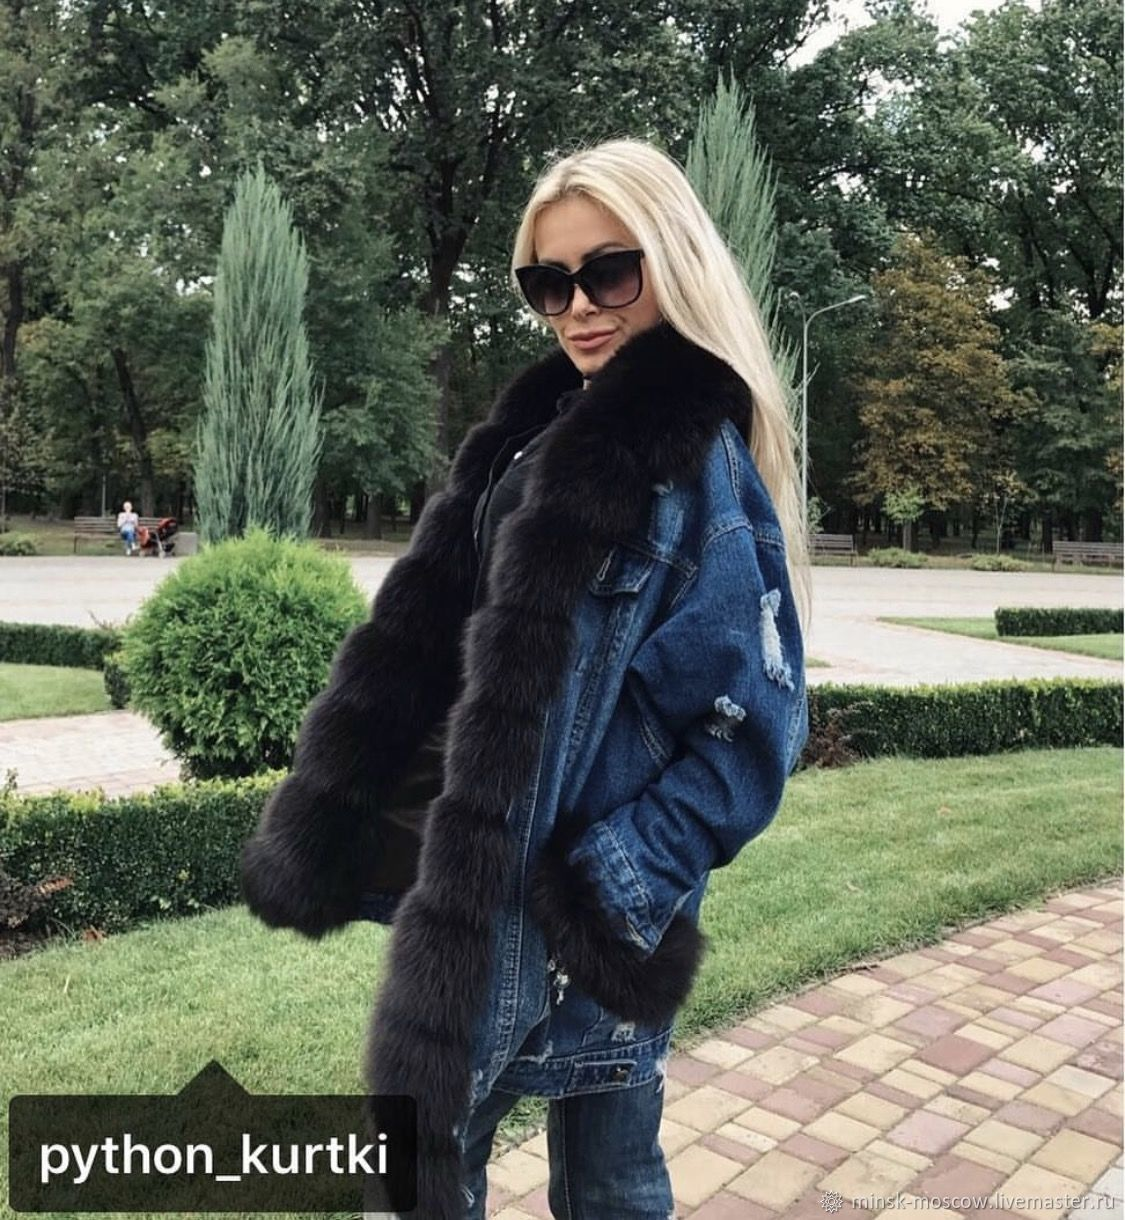 Looking for suppliers of Arctic Fox Fur Coats, jeans, silver Fox Fur Coats. Maybe inexpensive mink coats. The initial purchase for 2250$